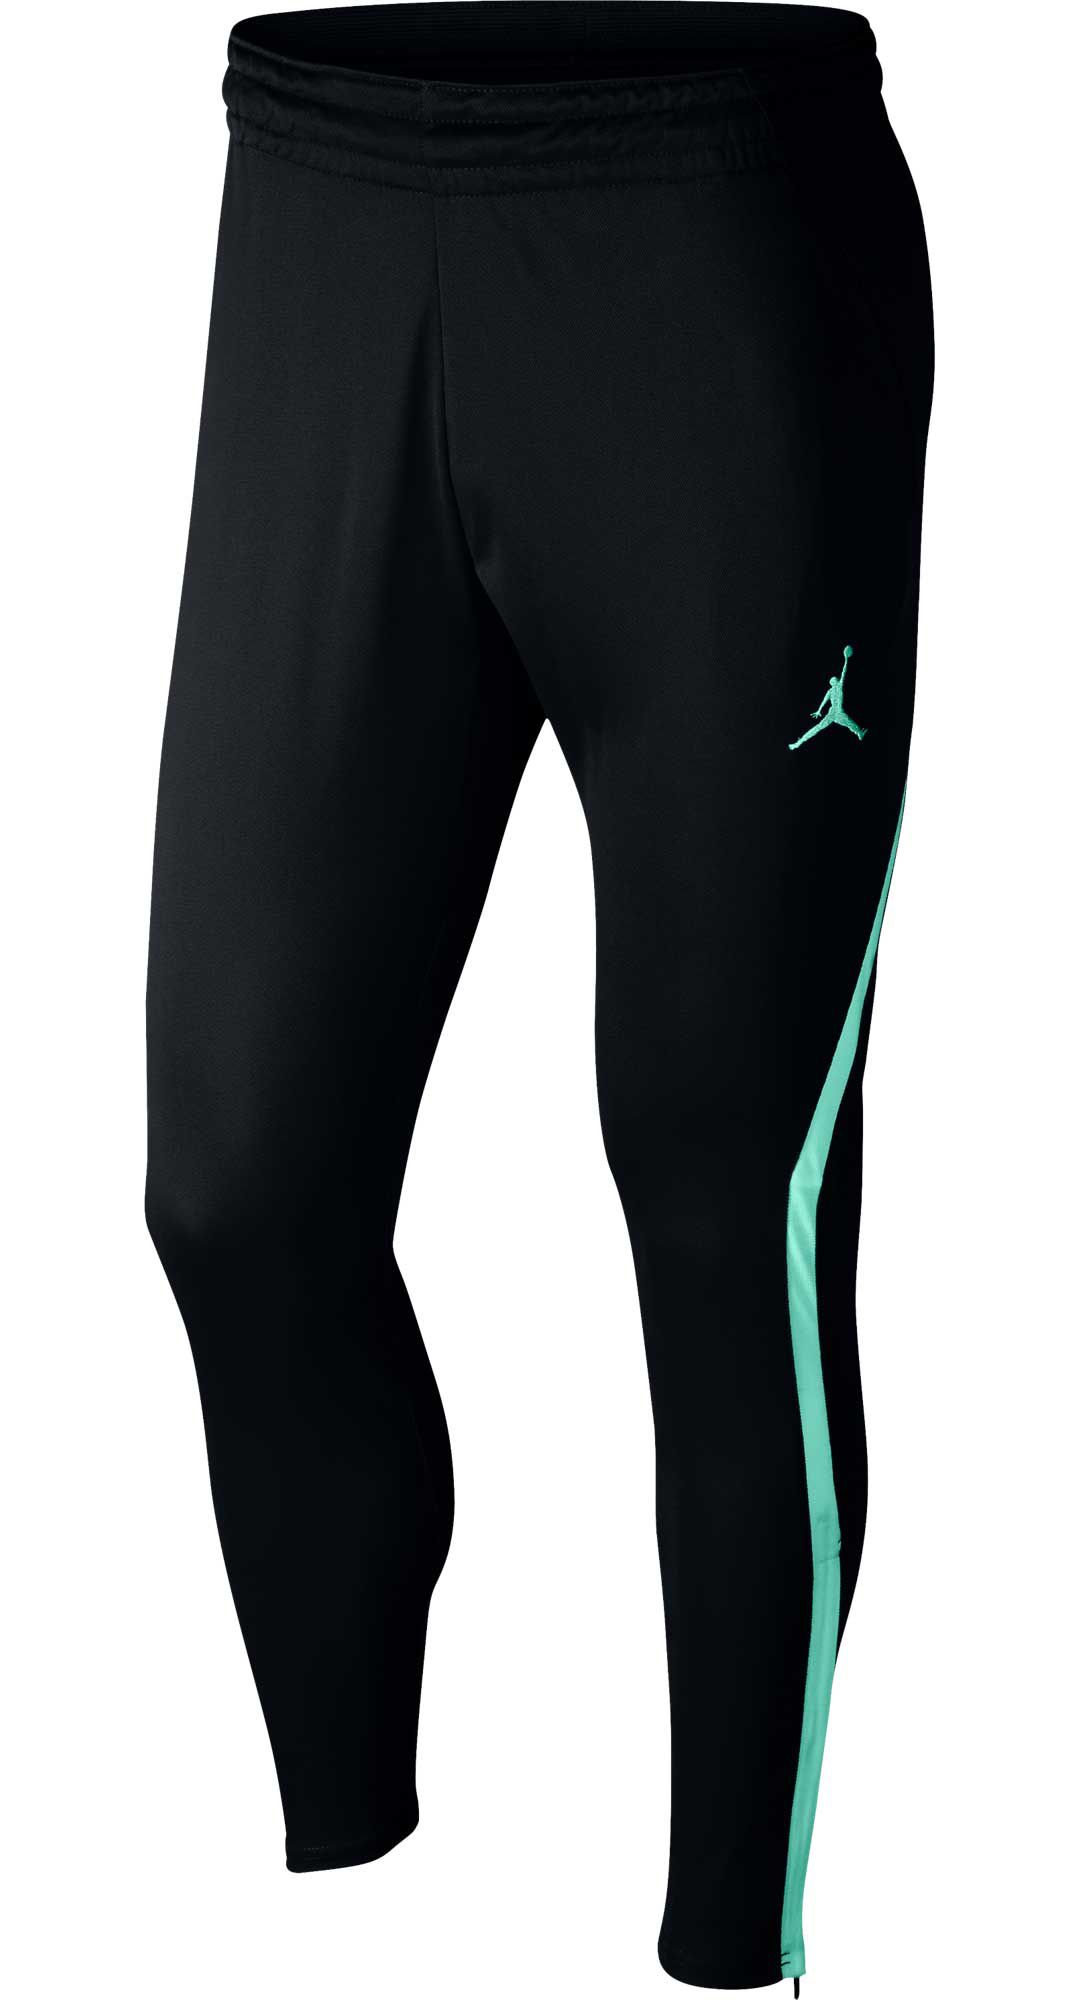 ffef82a036f8a8 Jordan Men s Dry 23 Alpha Training Pants 1